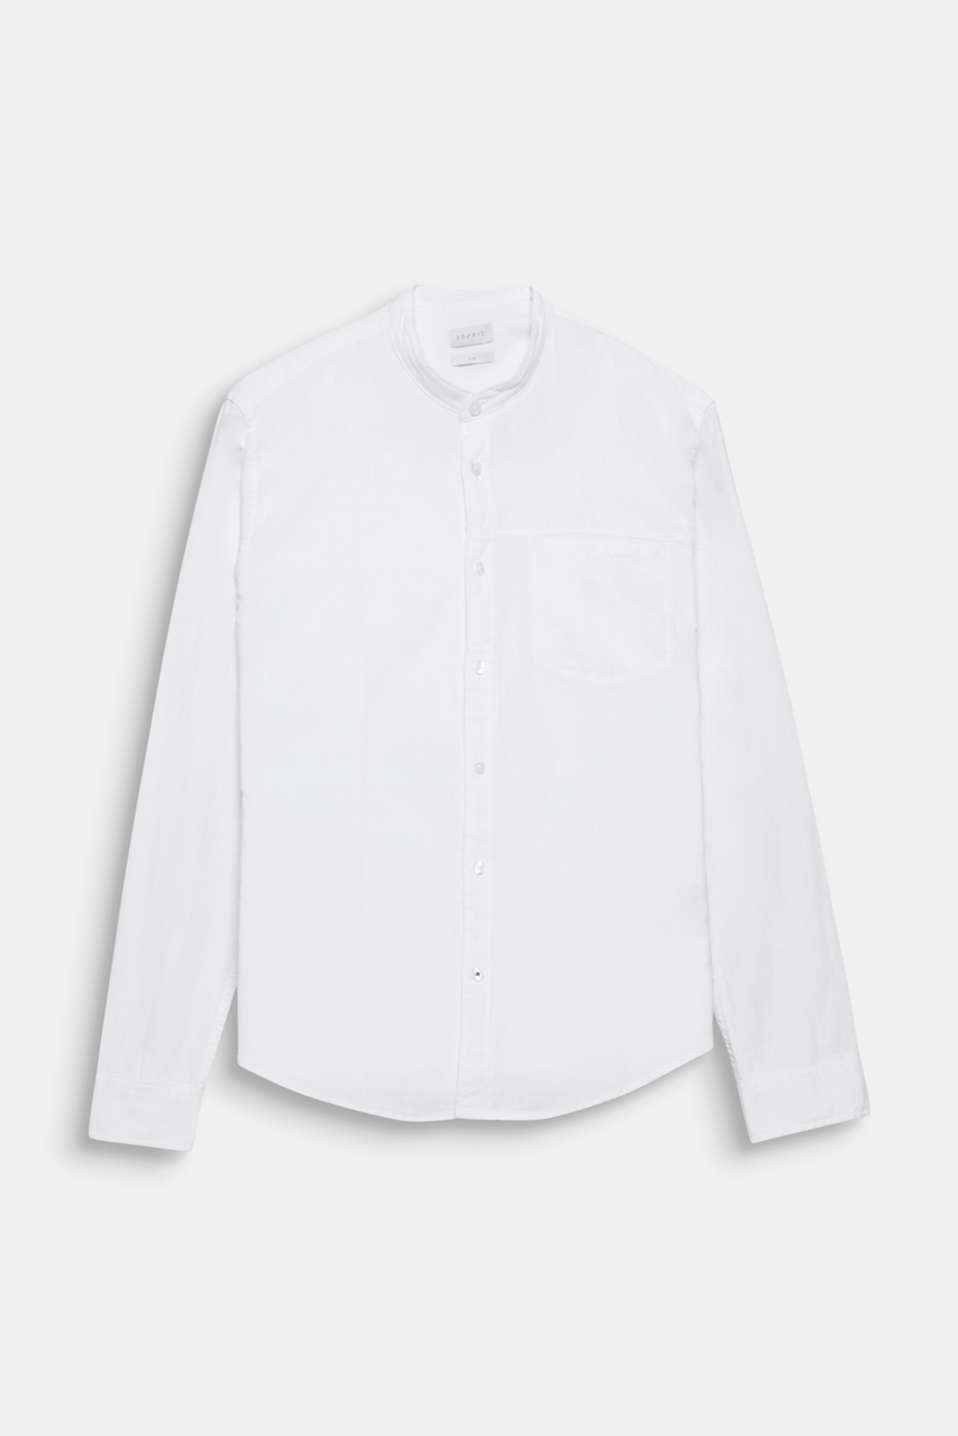 The two-tone texture and narrow stand-up collar give this shirt its authentic look.